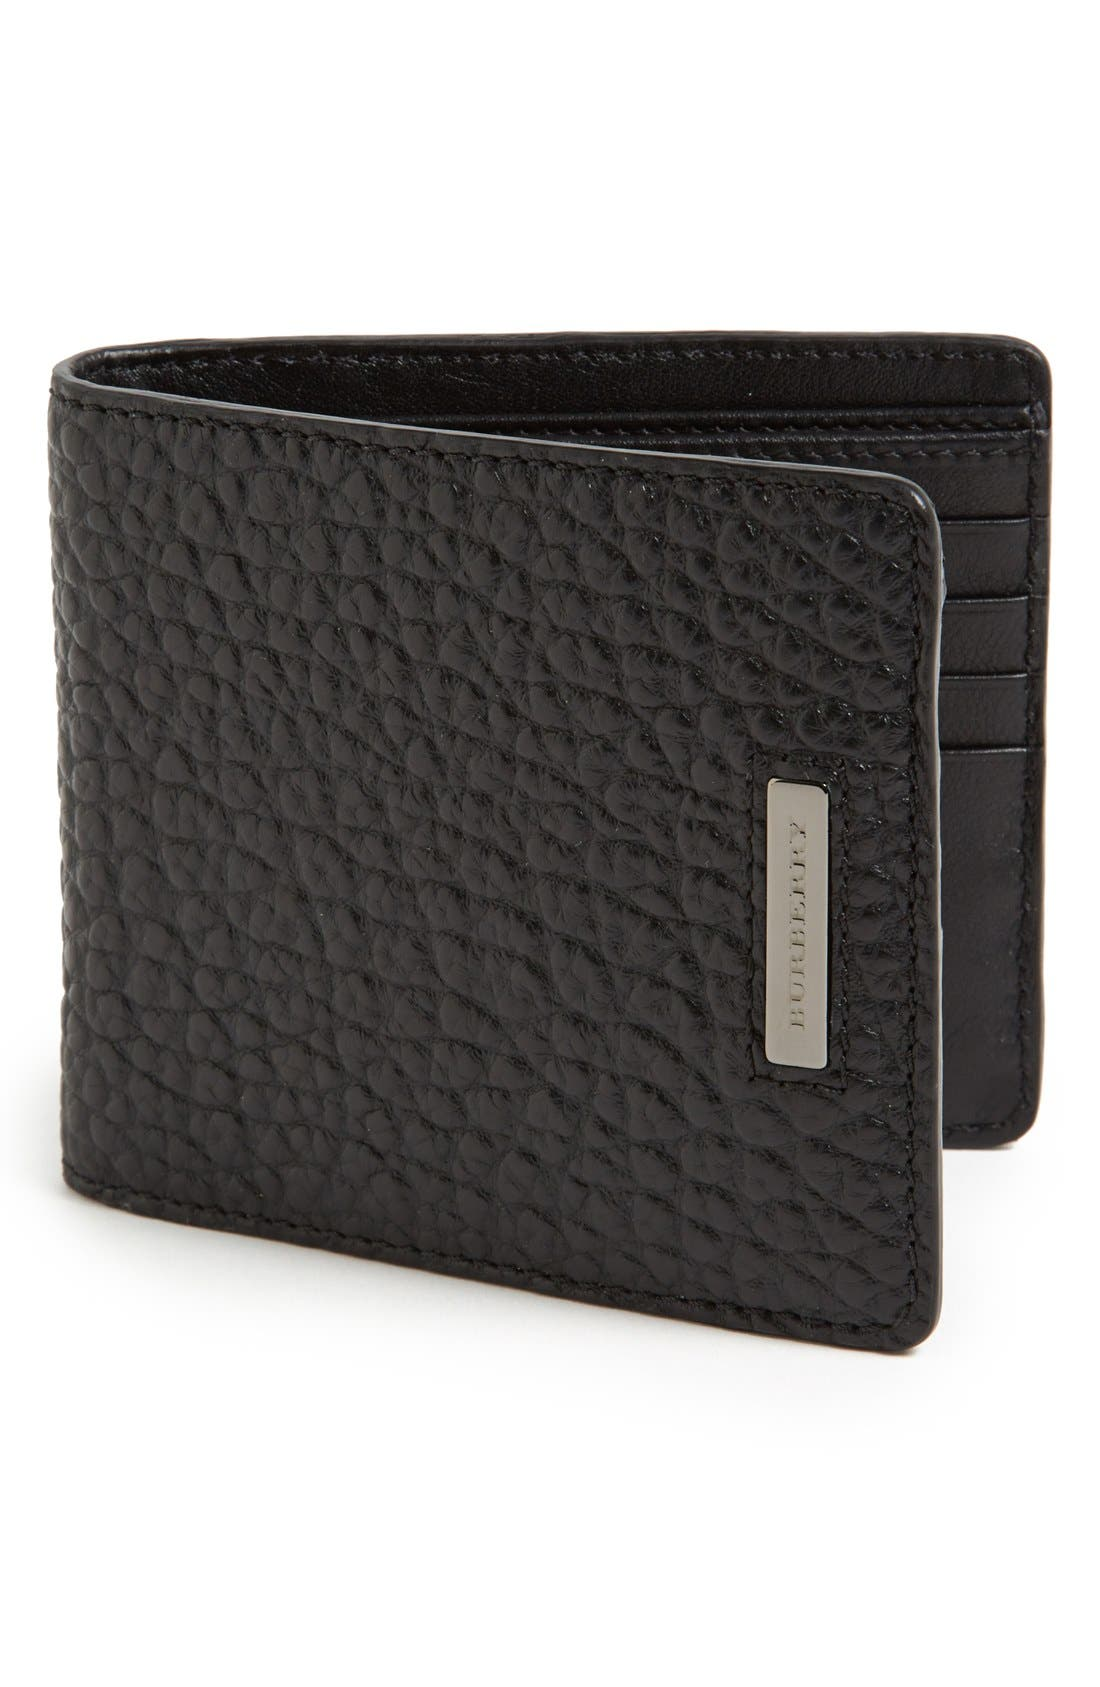 BURBERRY Hipfold Wallet, Main, color, 001